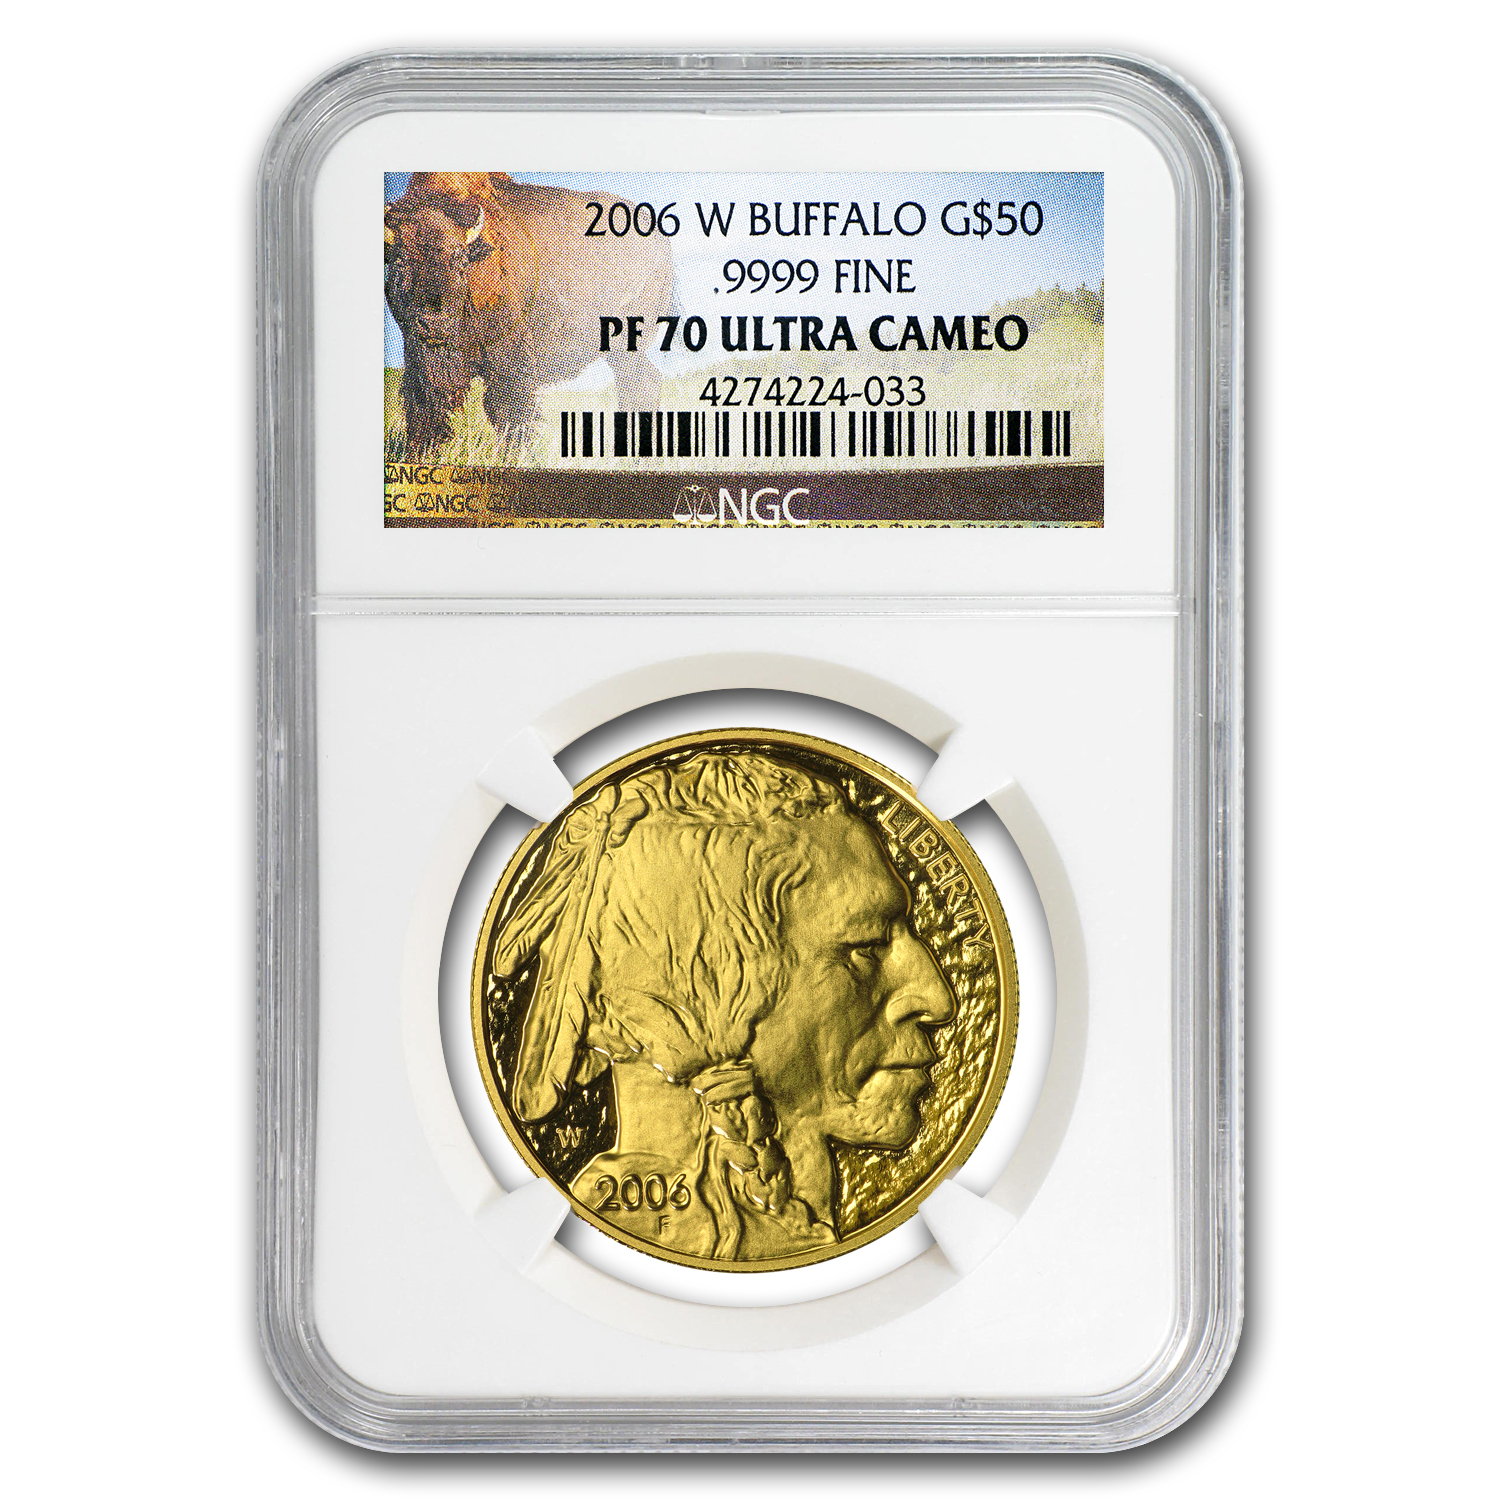 2006-W 1 oz Proof Gold Buffalo PF-70 NGC (Buffalo Label)